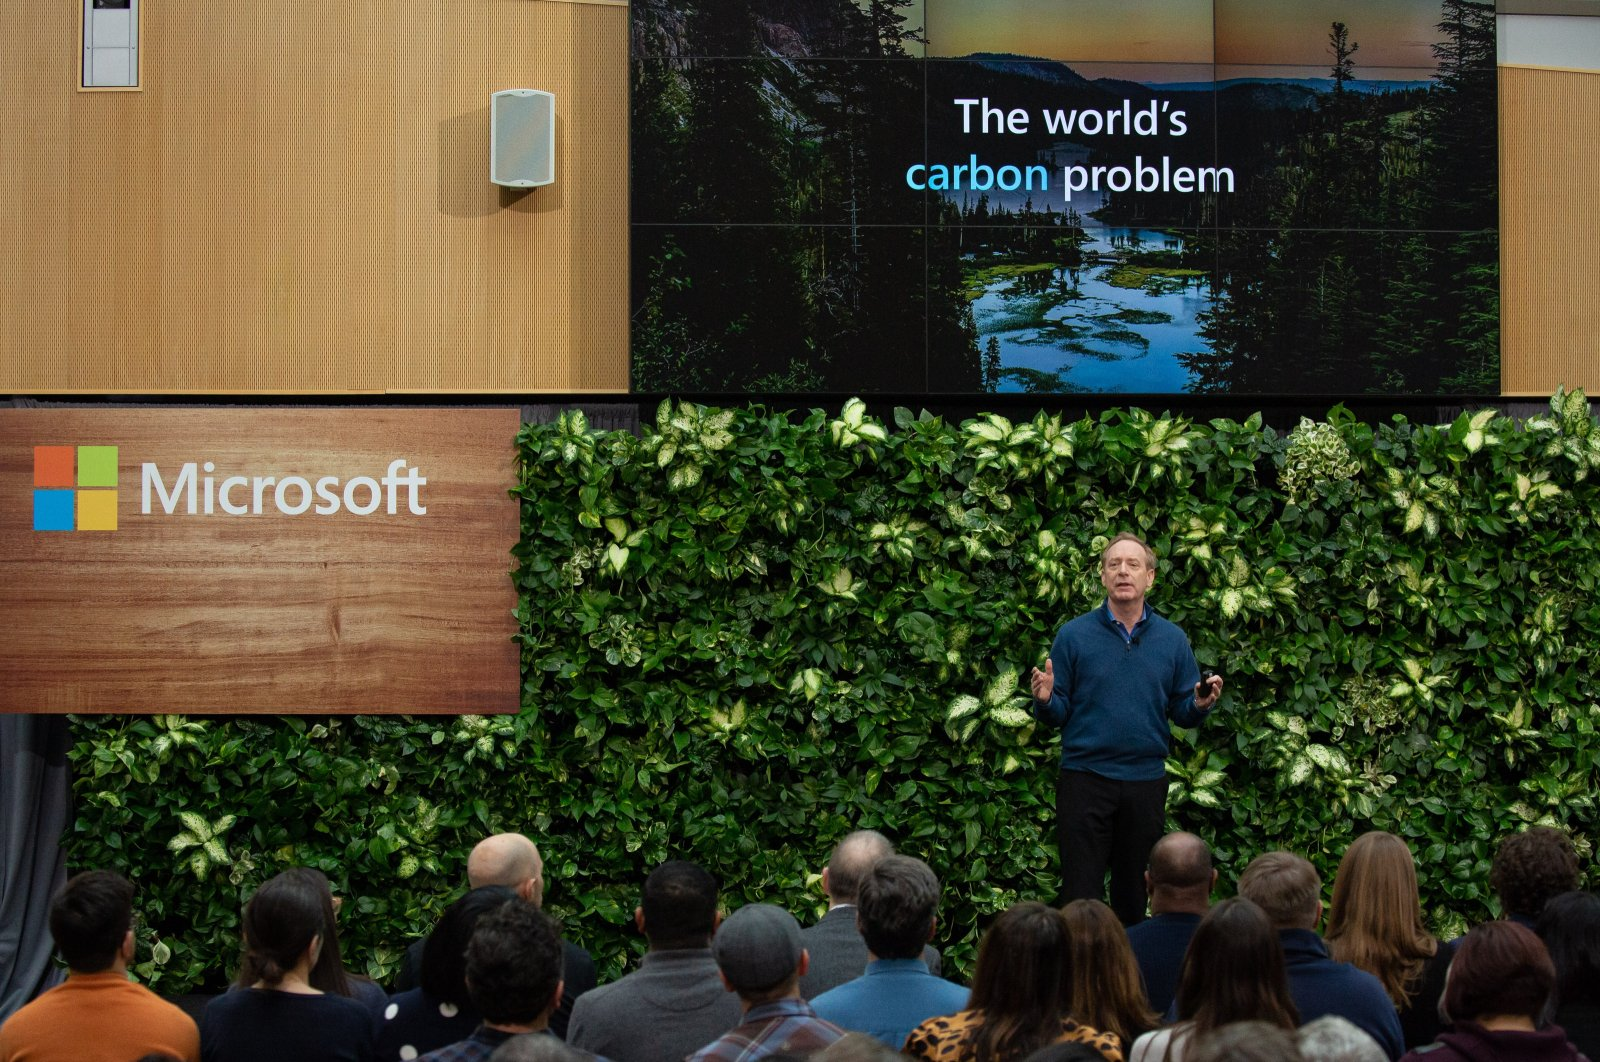 Brad Smith, president of Microsoft, speaks during a climate initiative event at the Microsoft campus in Redmond, Washington, U.S., Jan. 16, 2020. (Getty Images)